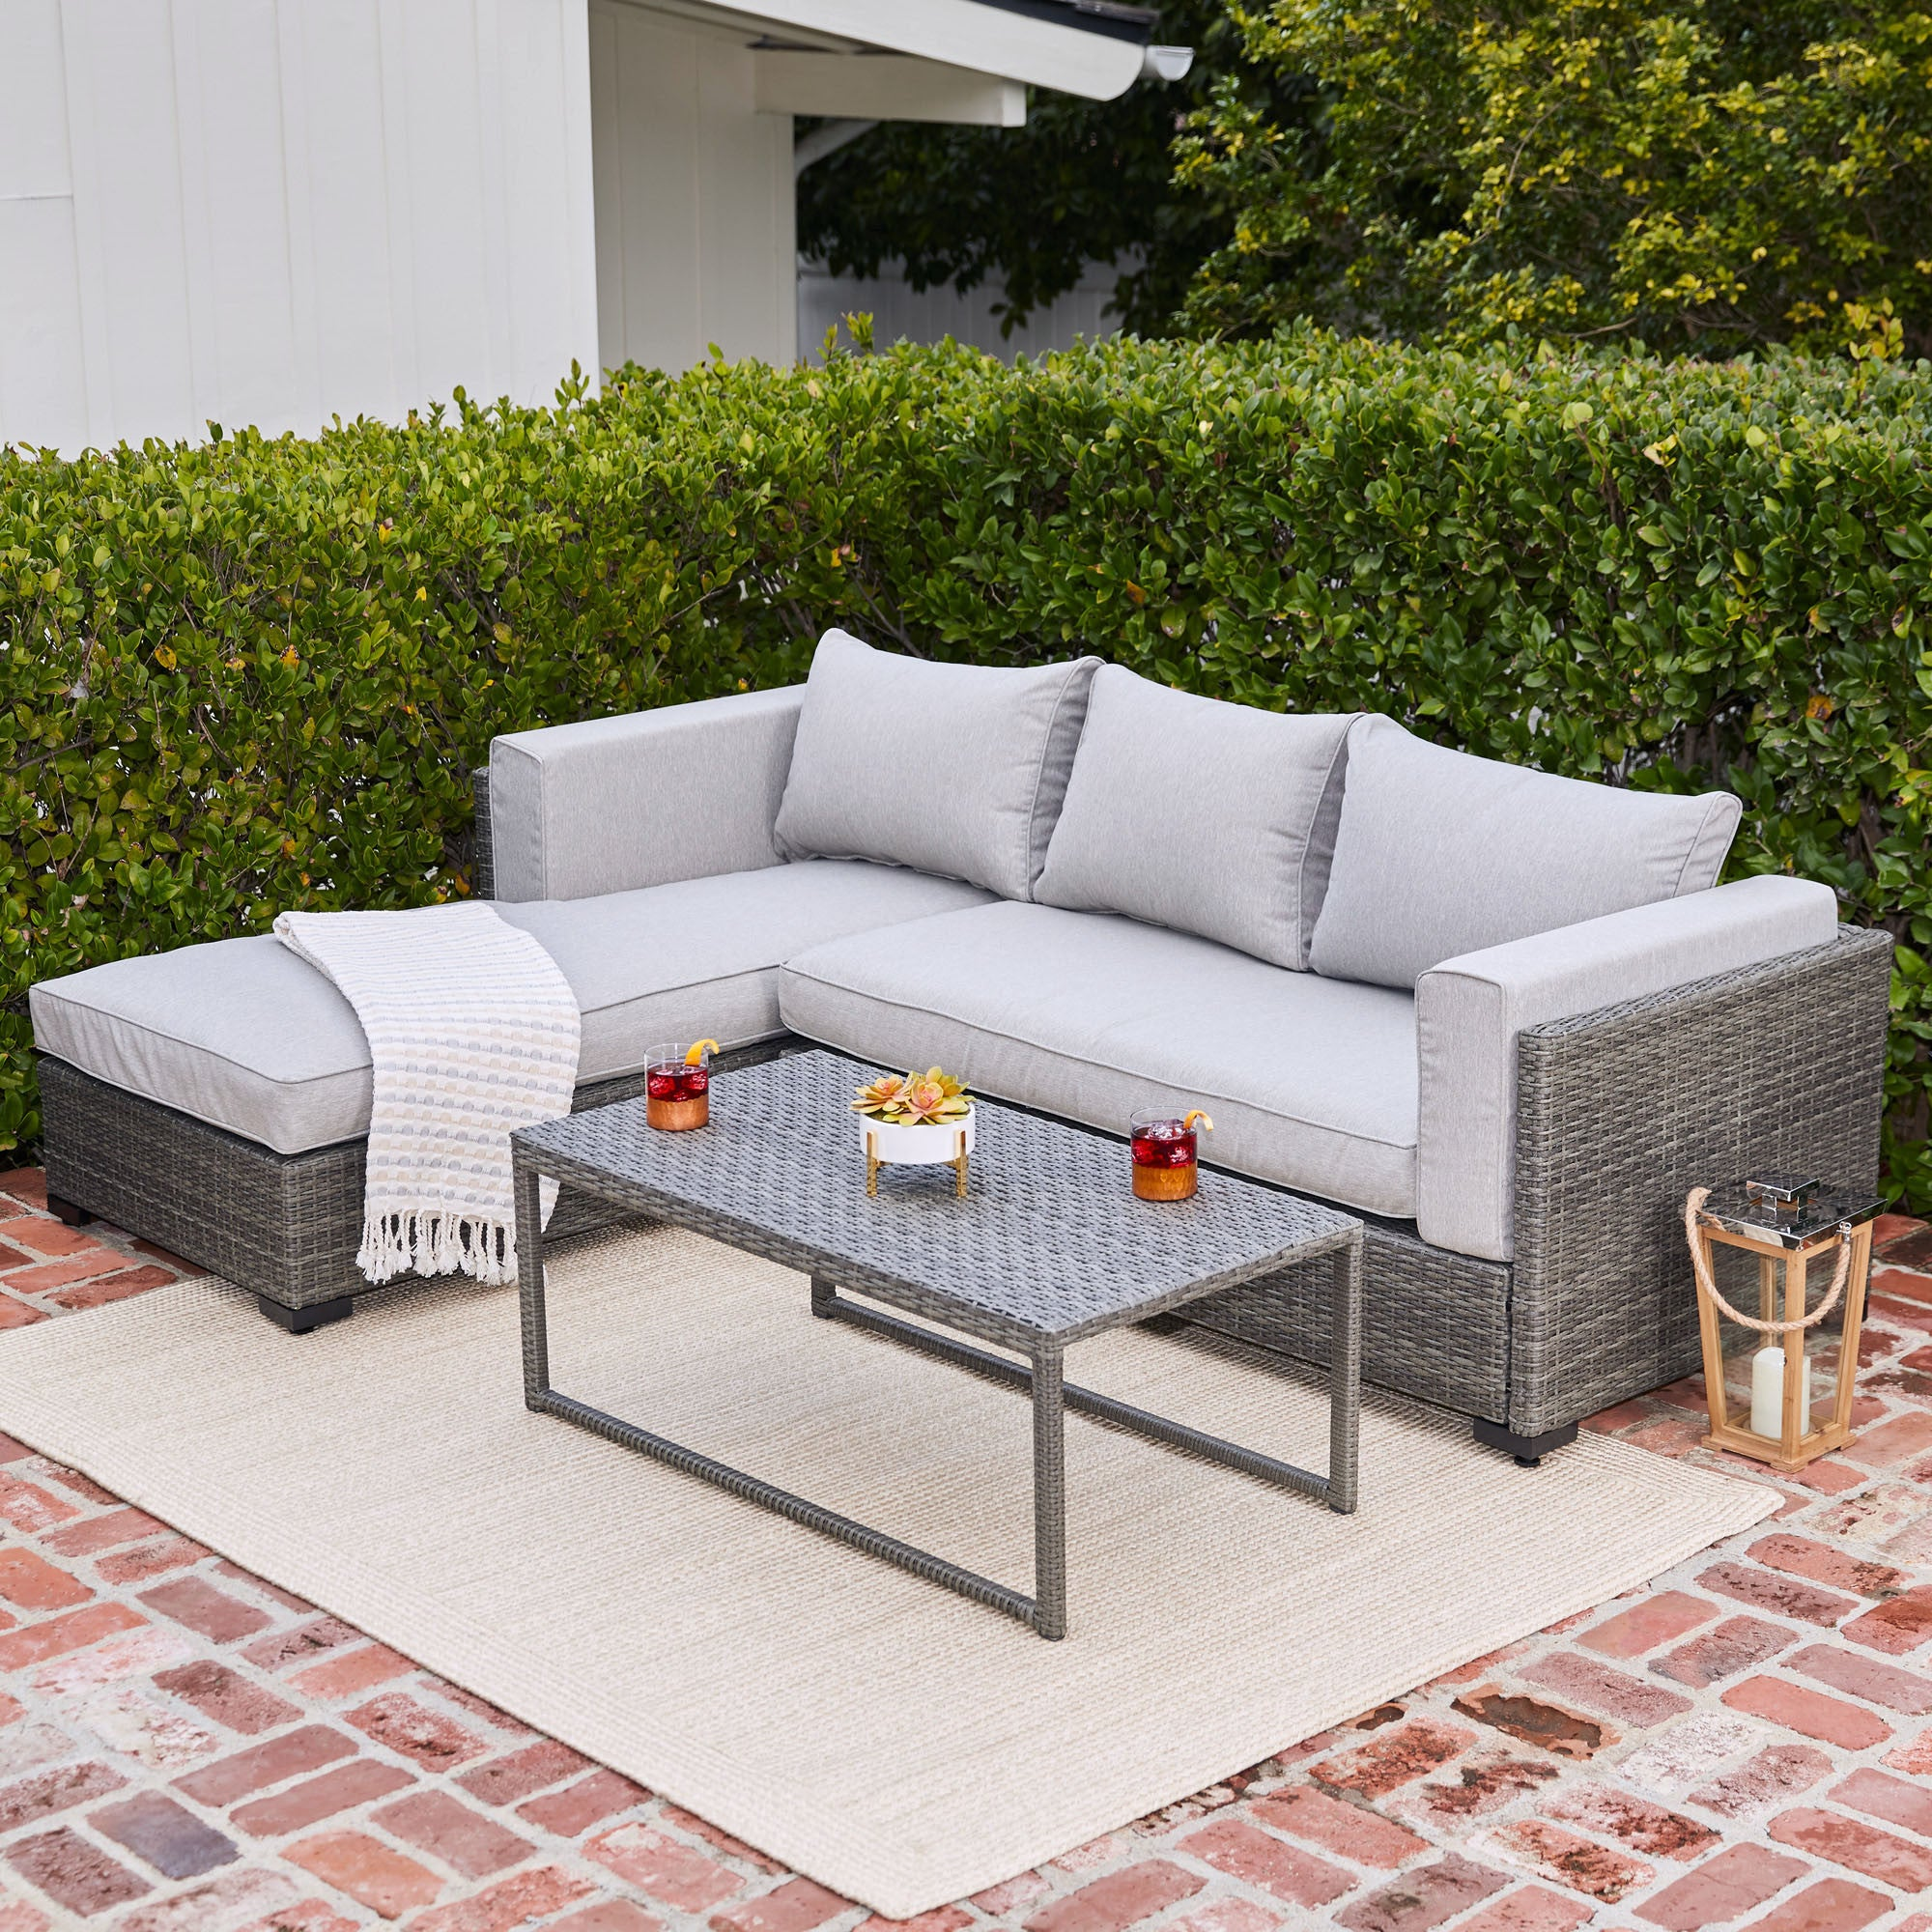 Modern Living 3 Piece Outdoor Sectional Cushion Wicker Furniture Set